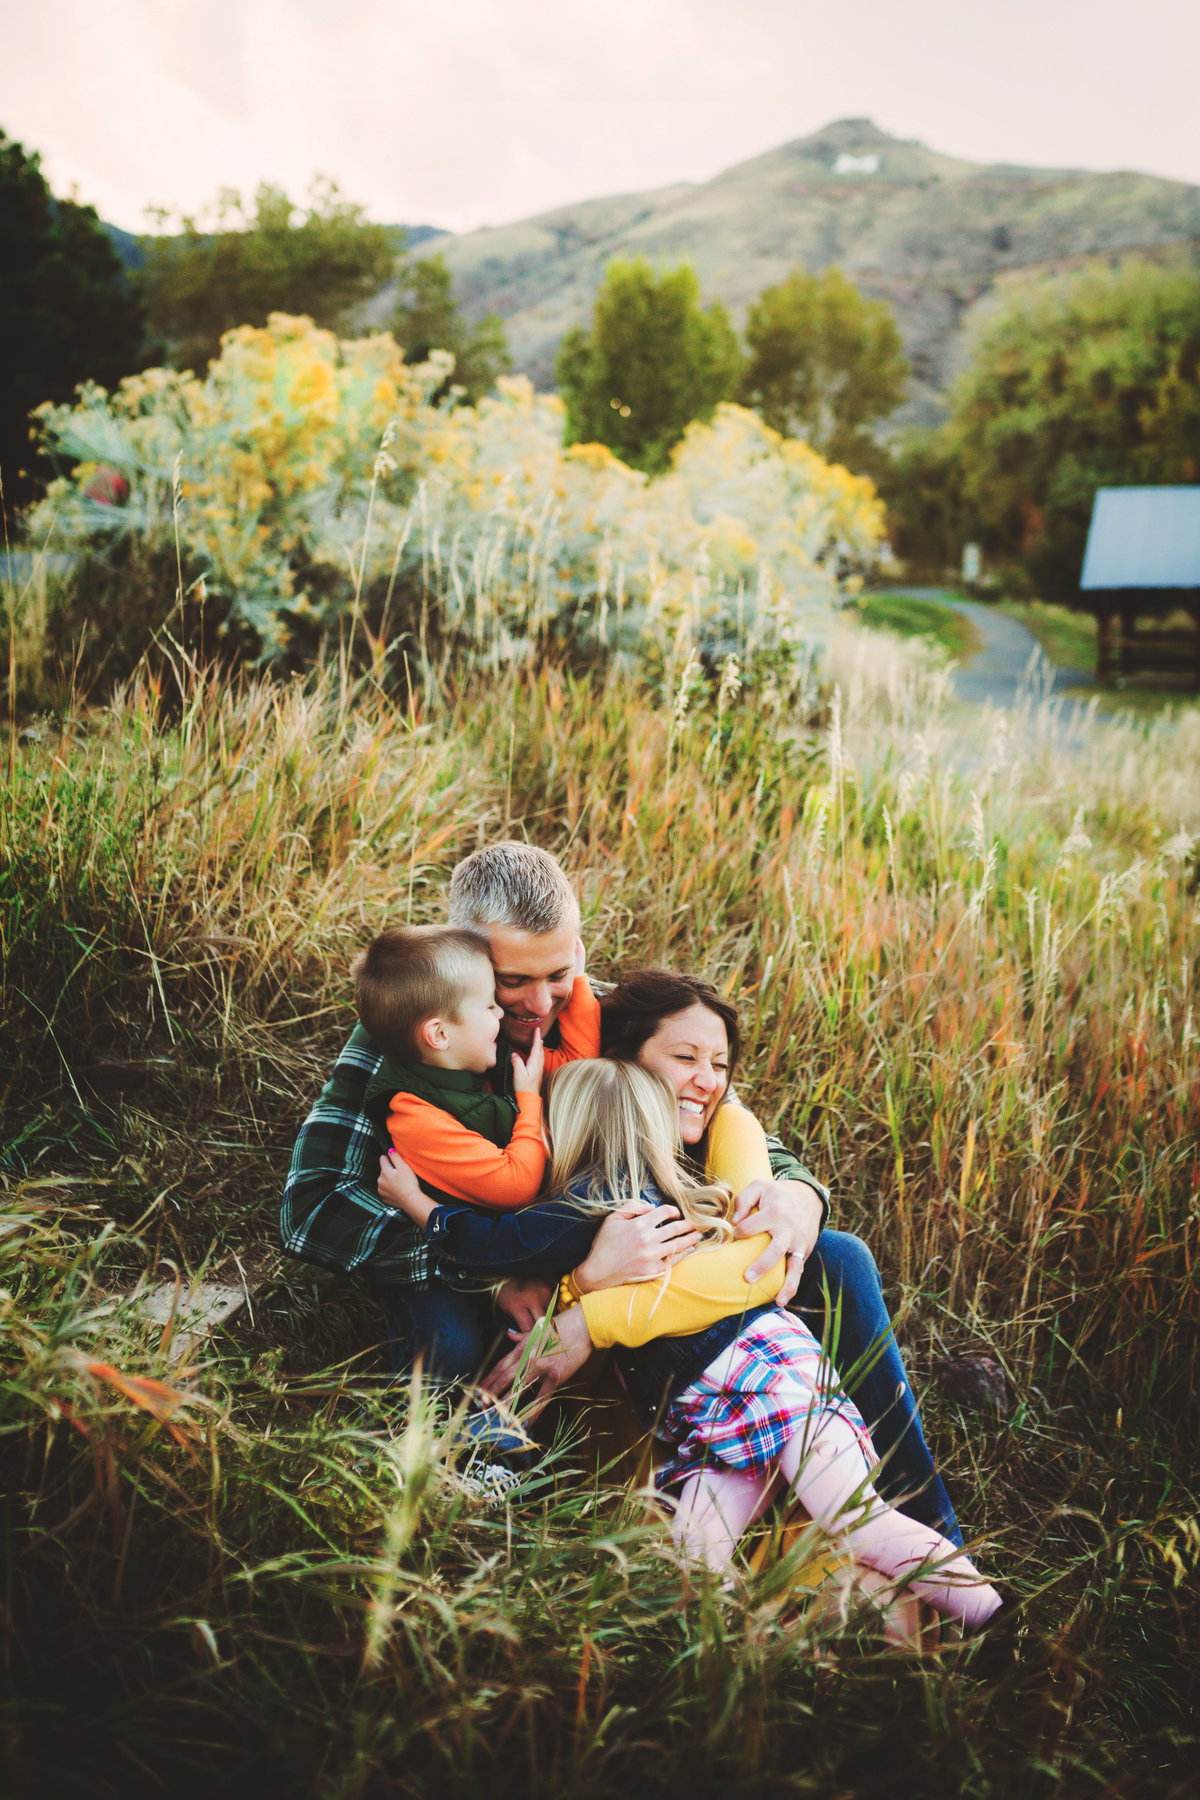 Denver Colorado Family Photographer, Denver Colorado Family photographer, on location family photography in Denver Colorado, natural family photography in Denver Colorado, family photographer in Colorado, children's photographer in Denver Colorado, natural light family photographer in Denver Colorado, Denver Colorado Family Photography, Family photography in Colorado, Family Pictures in Denver Colorado, Family Photographer in Colorado, Family Photos in Colorado, Colorado Family Photographer